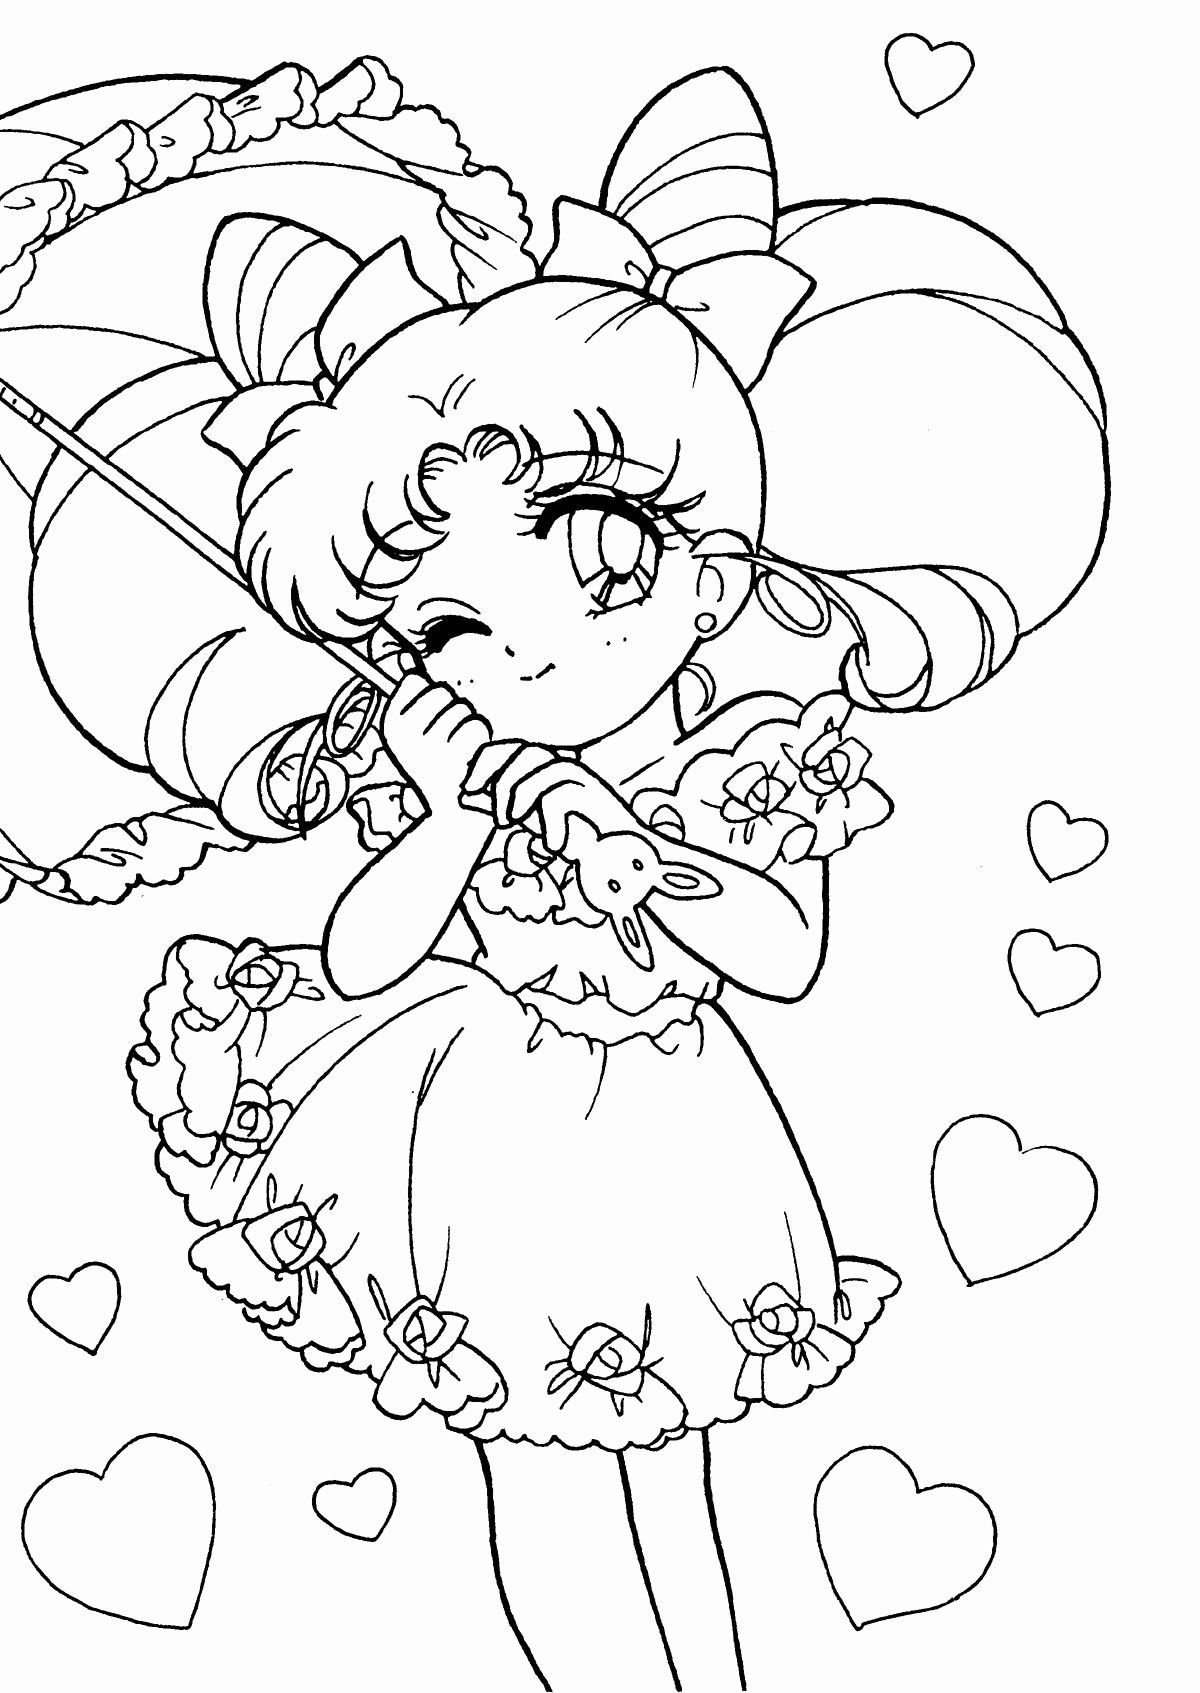 Sailor Moon Coloring Book Best Of Tsuki Matsuri The Sailormoon Coloring Book Archive Sailor Moon Coloring Pages Moon Coloring Pages Chibi Coloring Pages